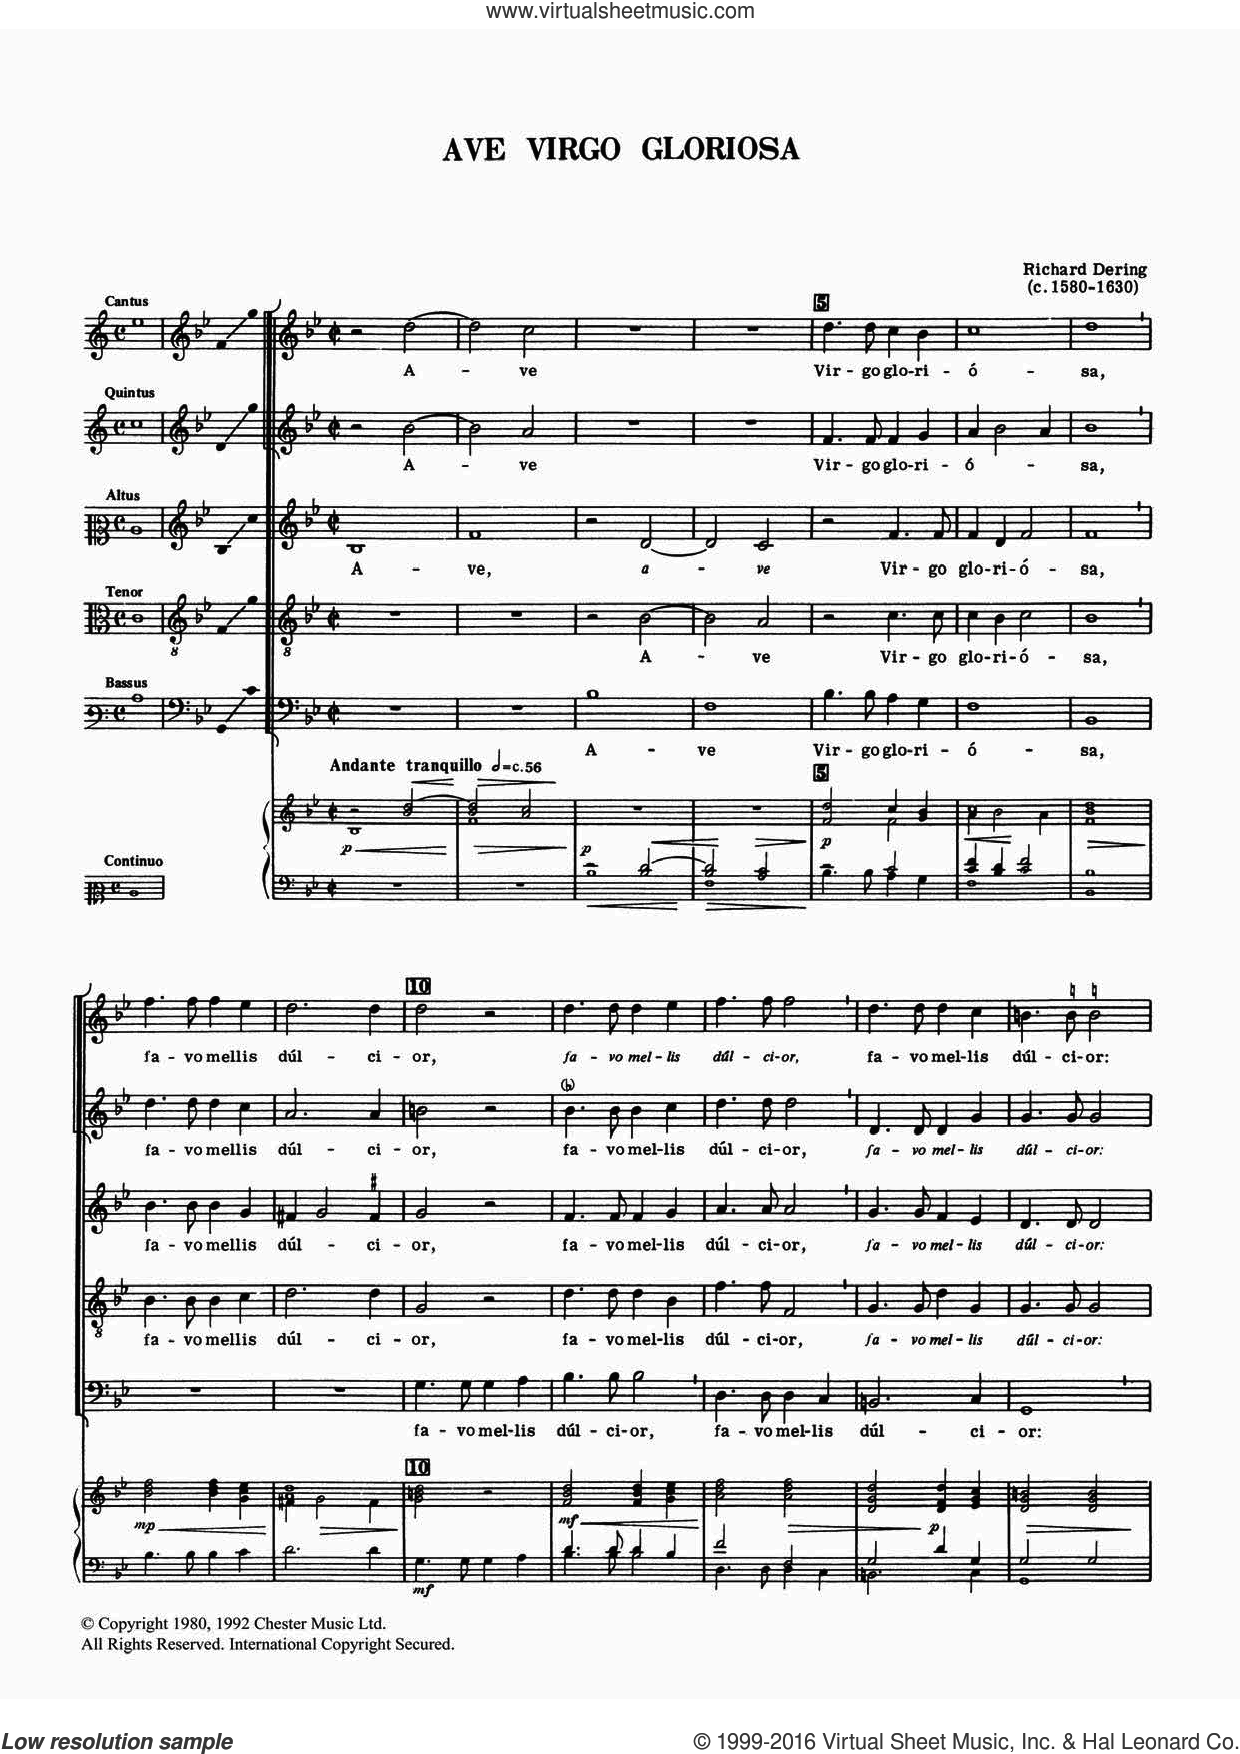 Ave Virgo Gloriosa sheet music for voice, piano or guitar by Richard Dering. Score Image Preview.